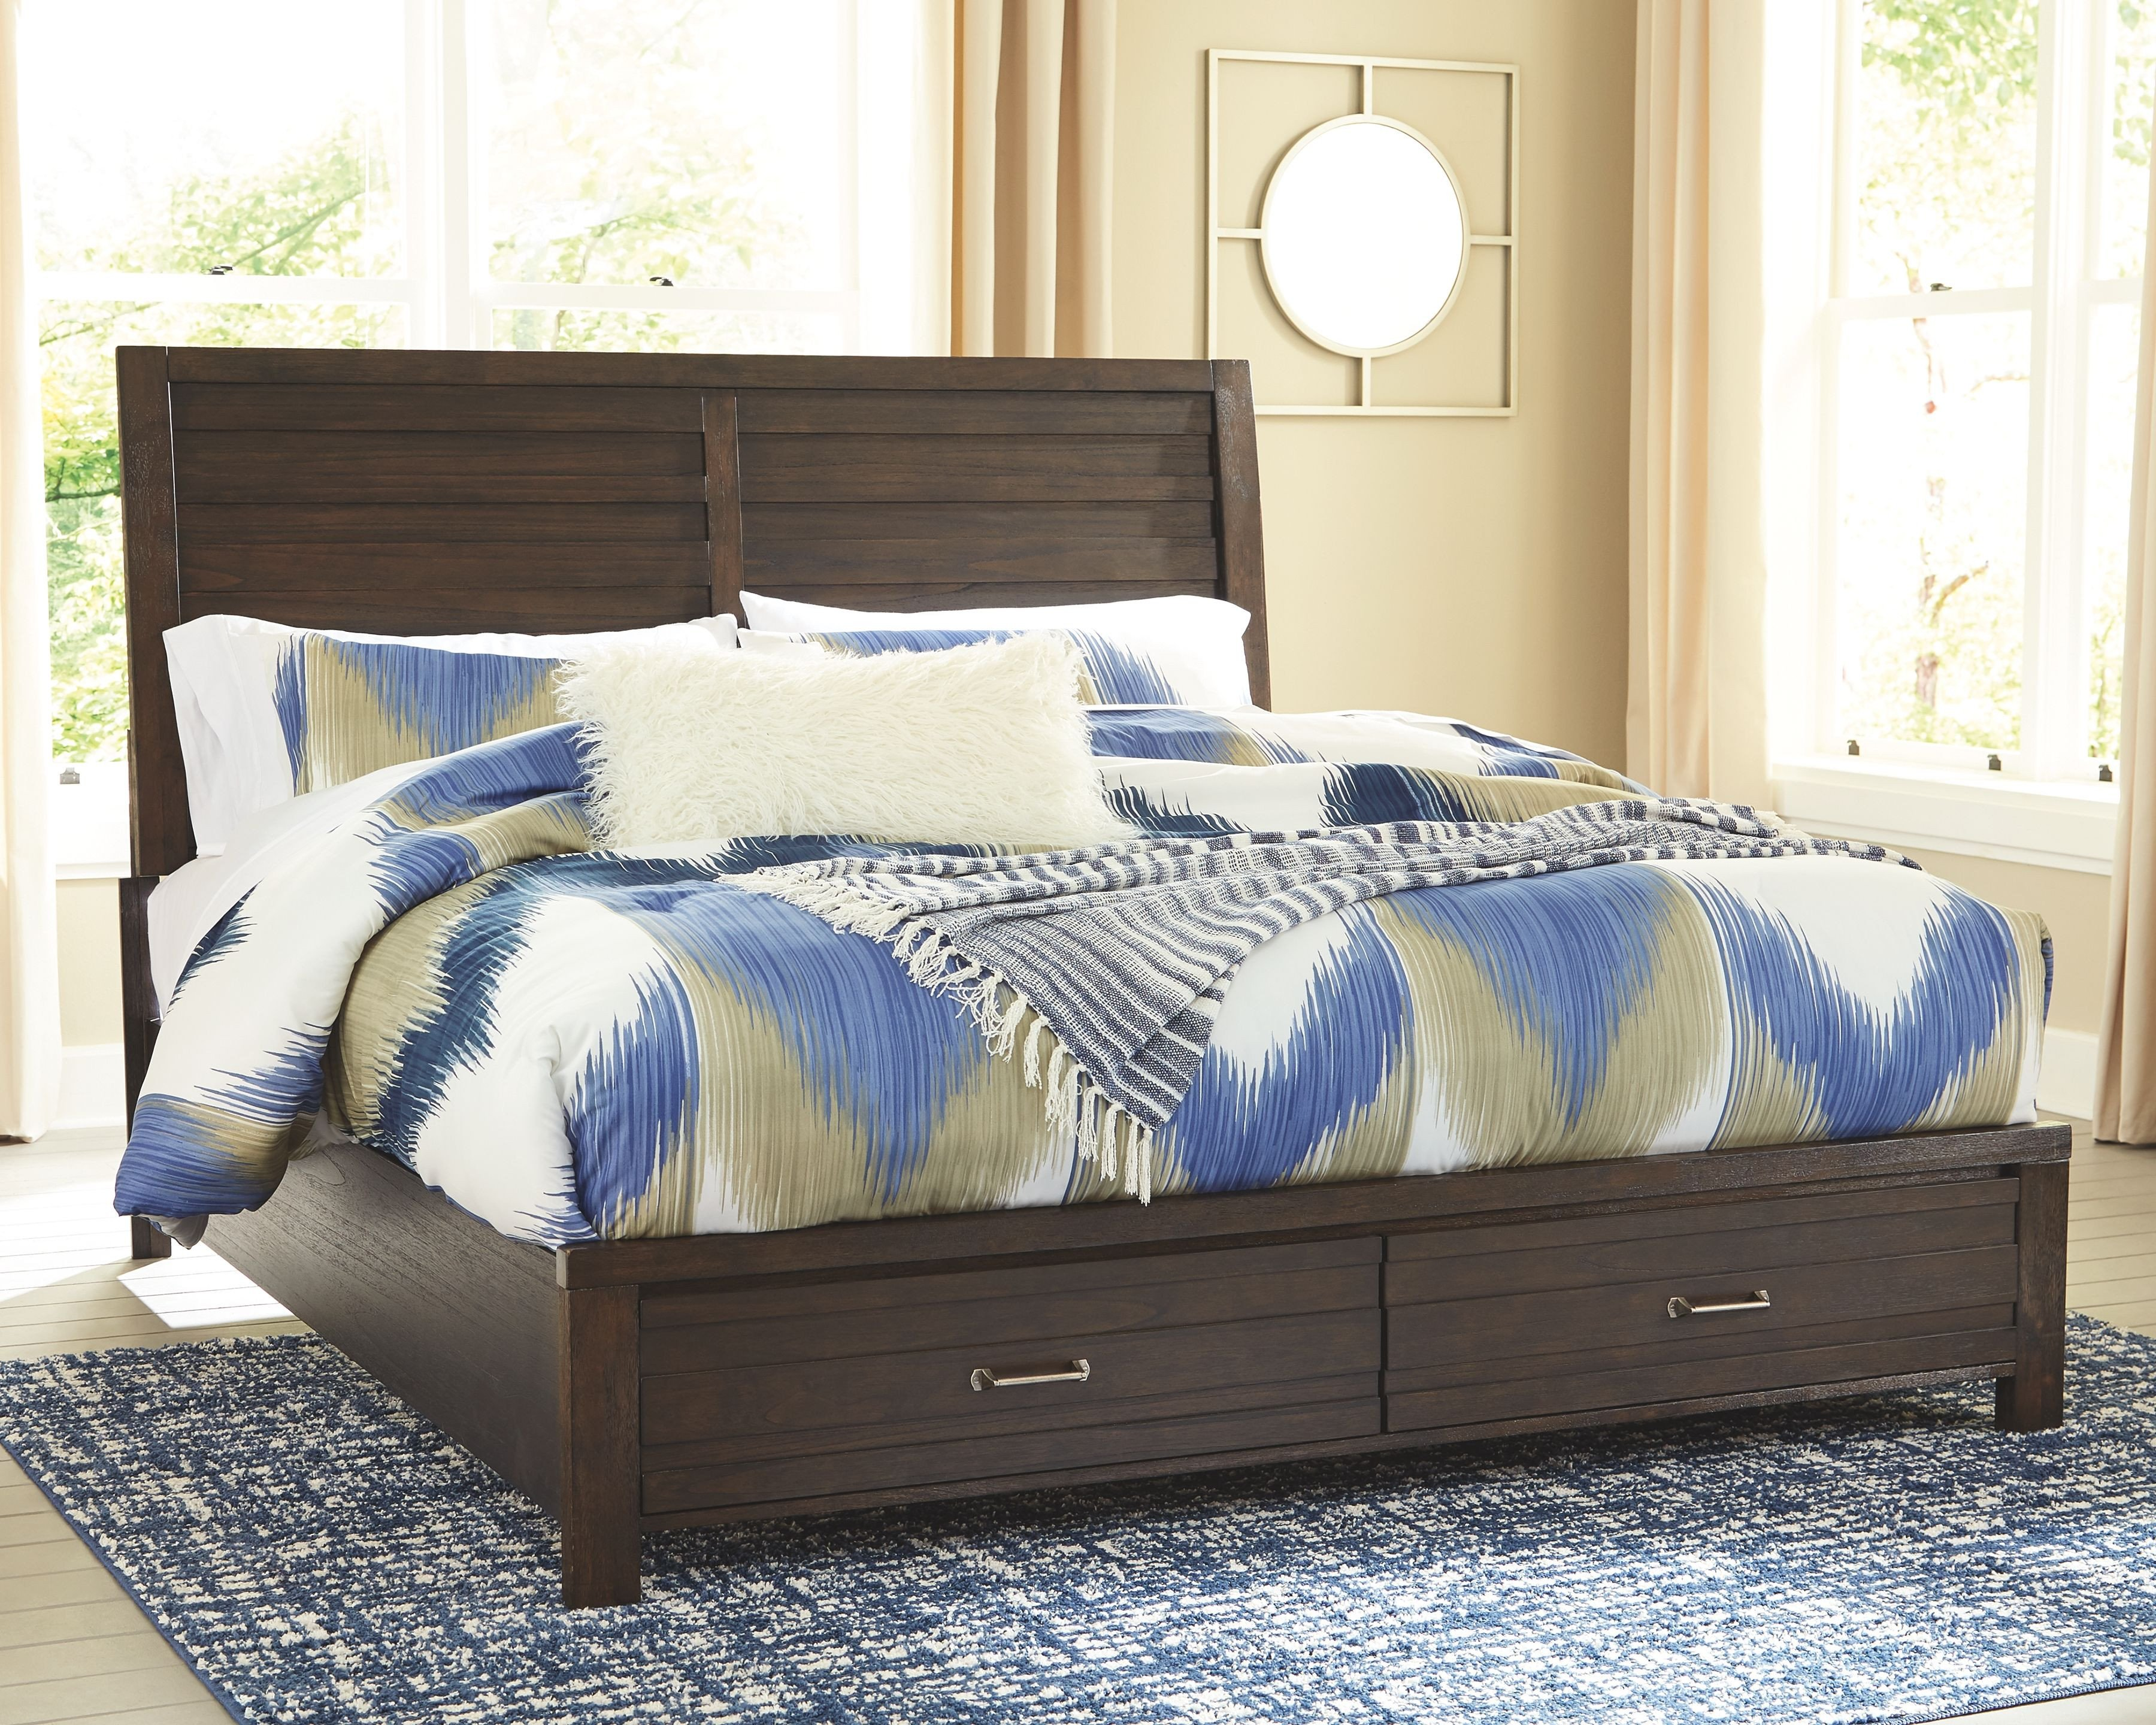 Affordable King Bedroom Set Inspirational Darbry California King Panel Bed with Storage Brown